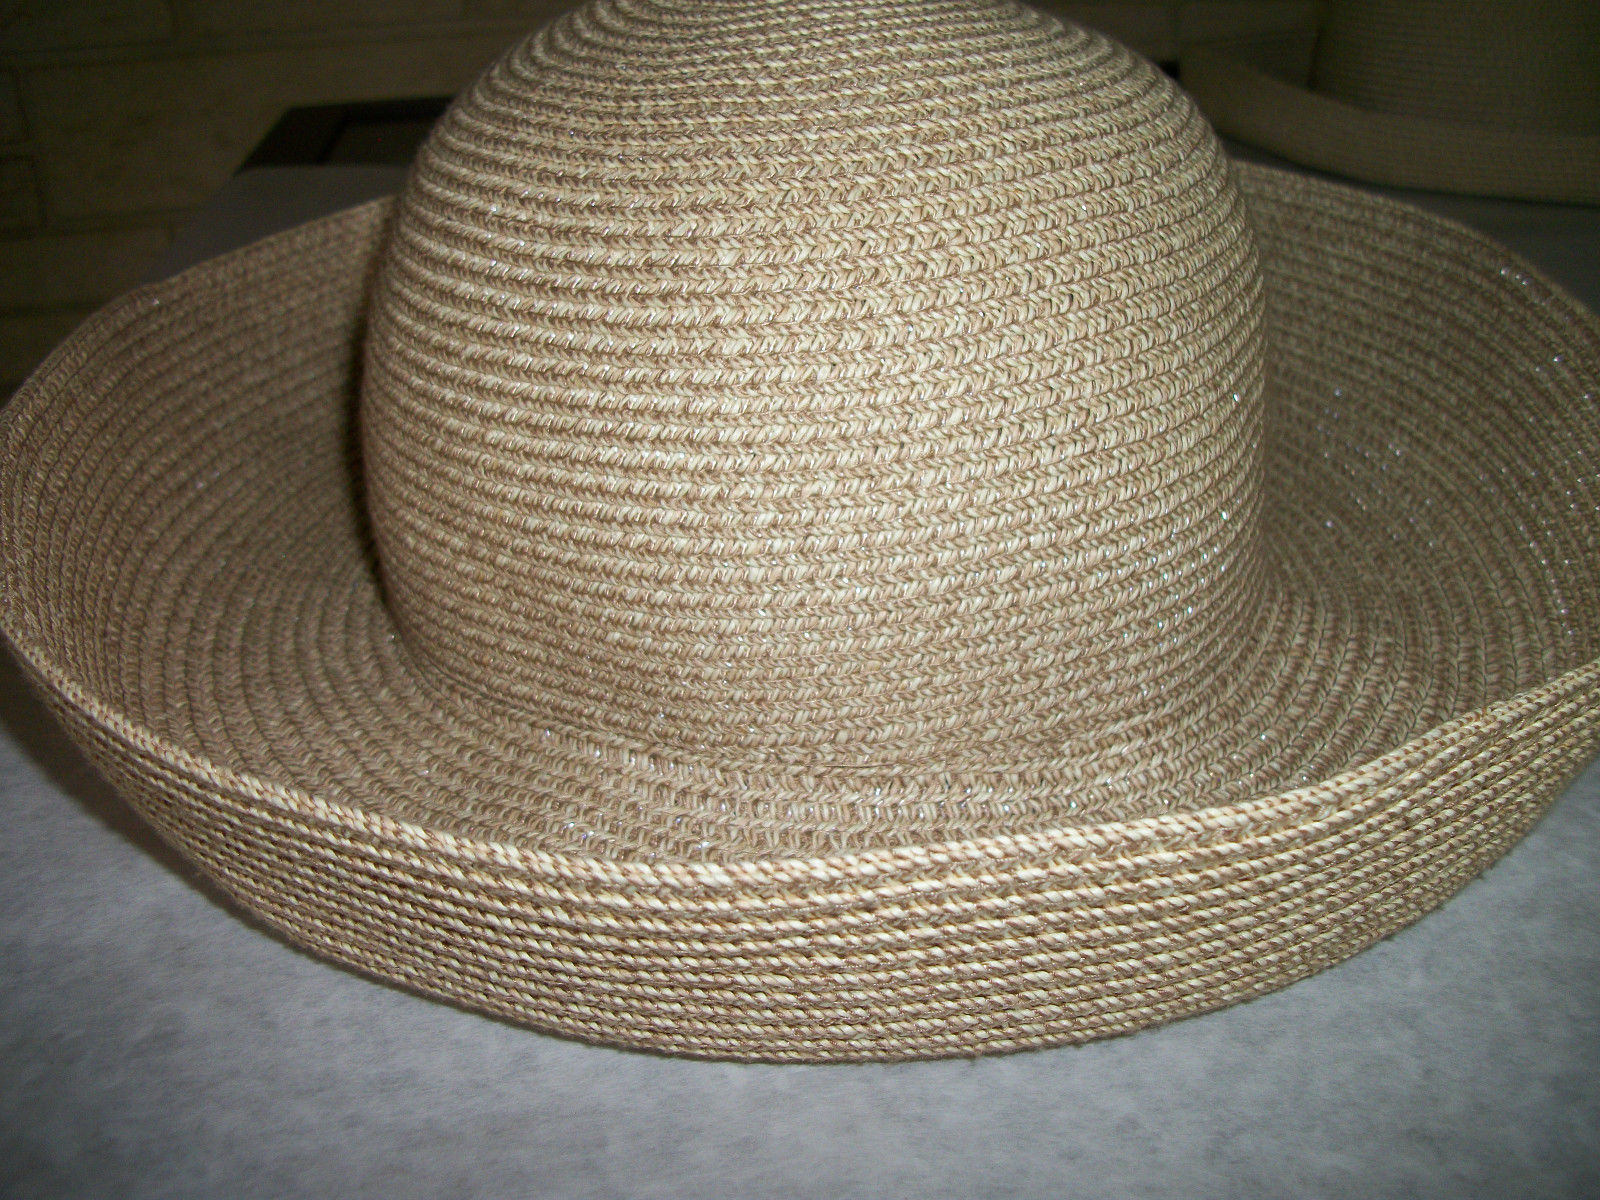 45e4beedcec8a ... BETMAR Women s Wide Brimmed Straw Sun Hat packable w RINK BOW ...